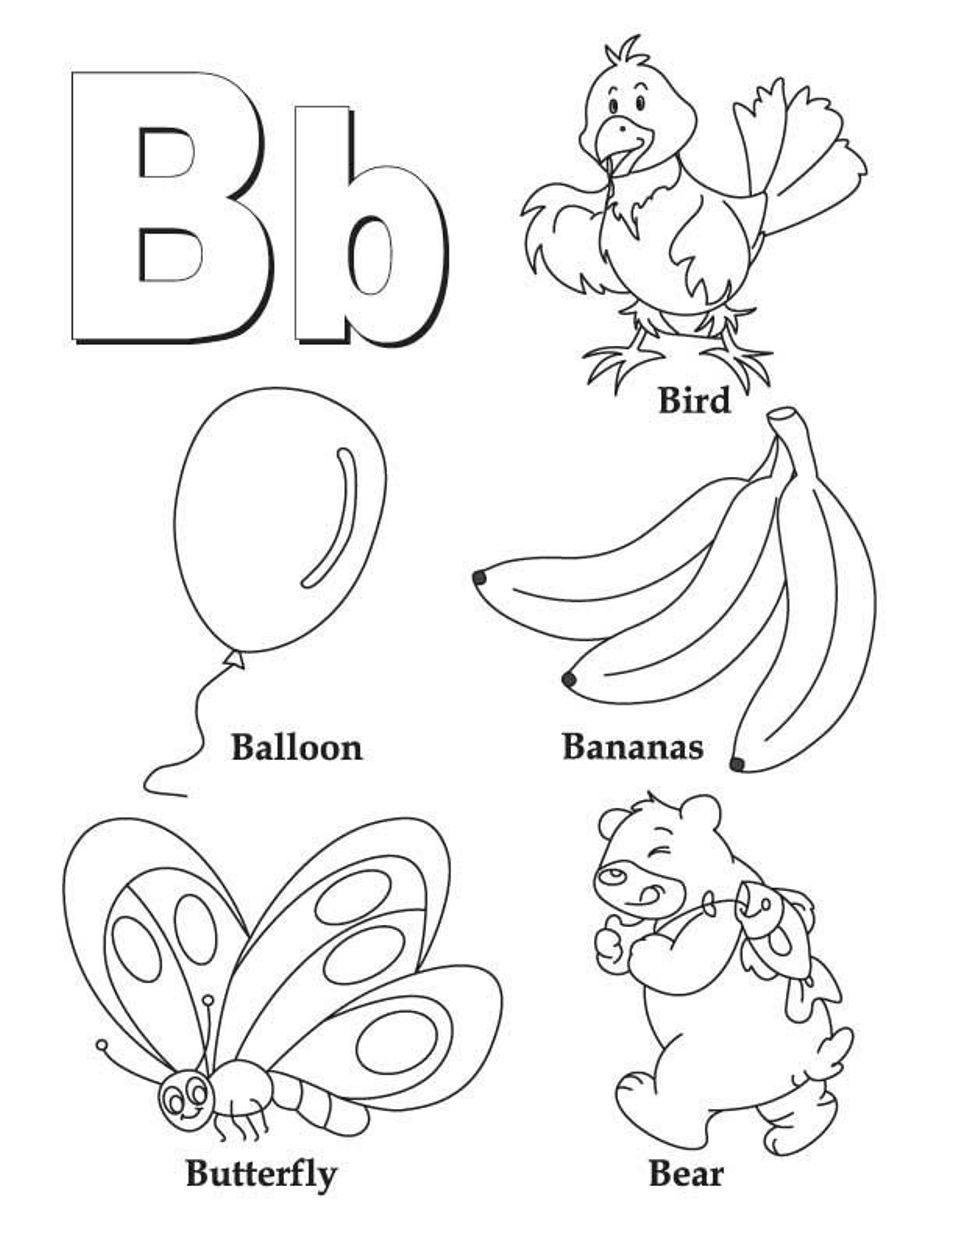 nightingale animal coloring pages. alphabet coloring pages b word printable animals Letter B Coloring Pages  Preschool and Kindergarten